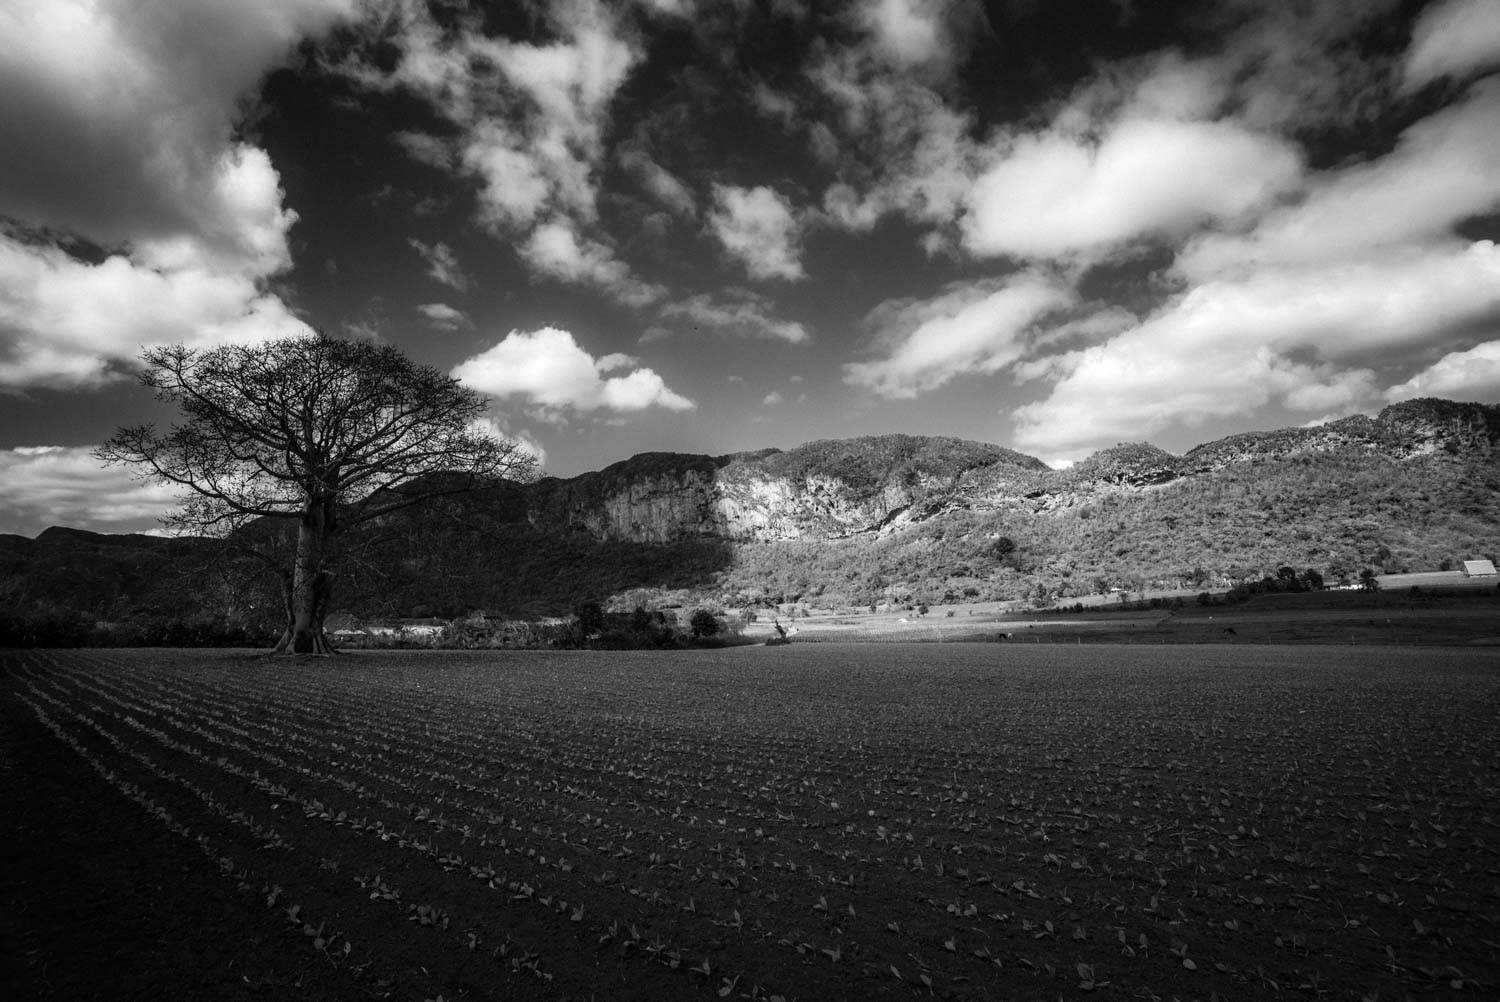 Black and White Photography by Tim van den Boog